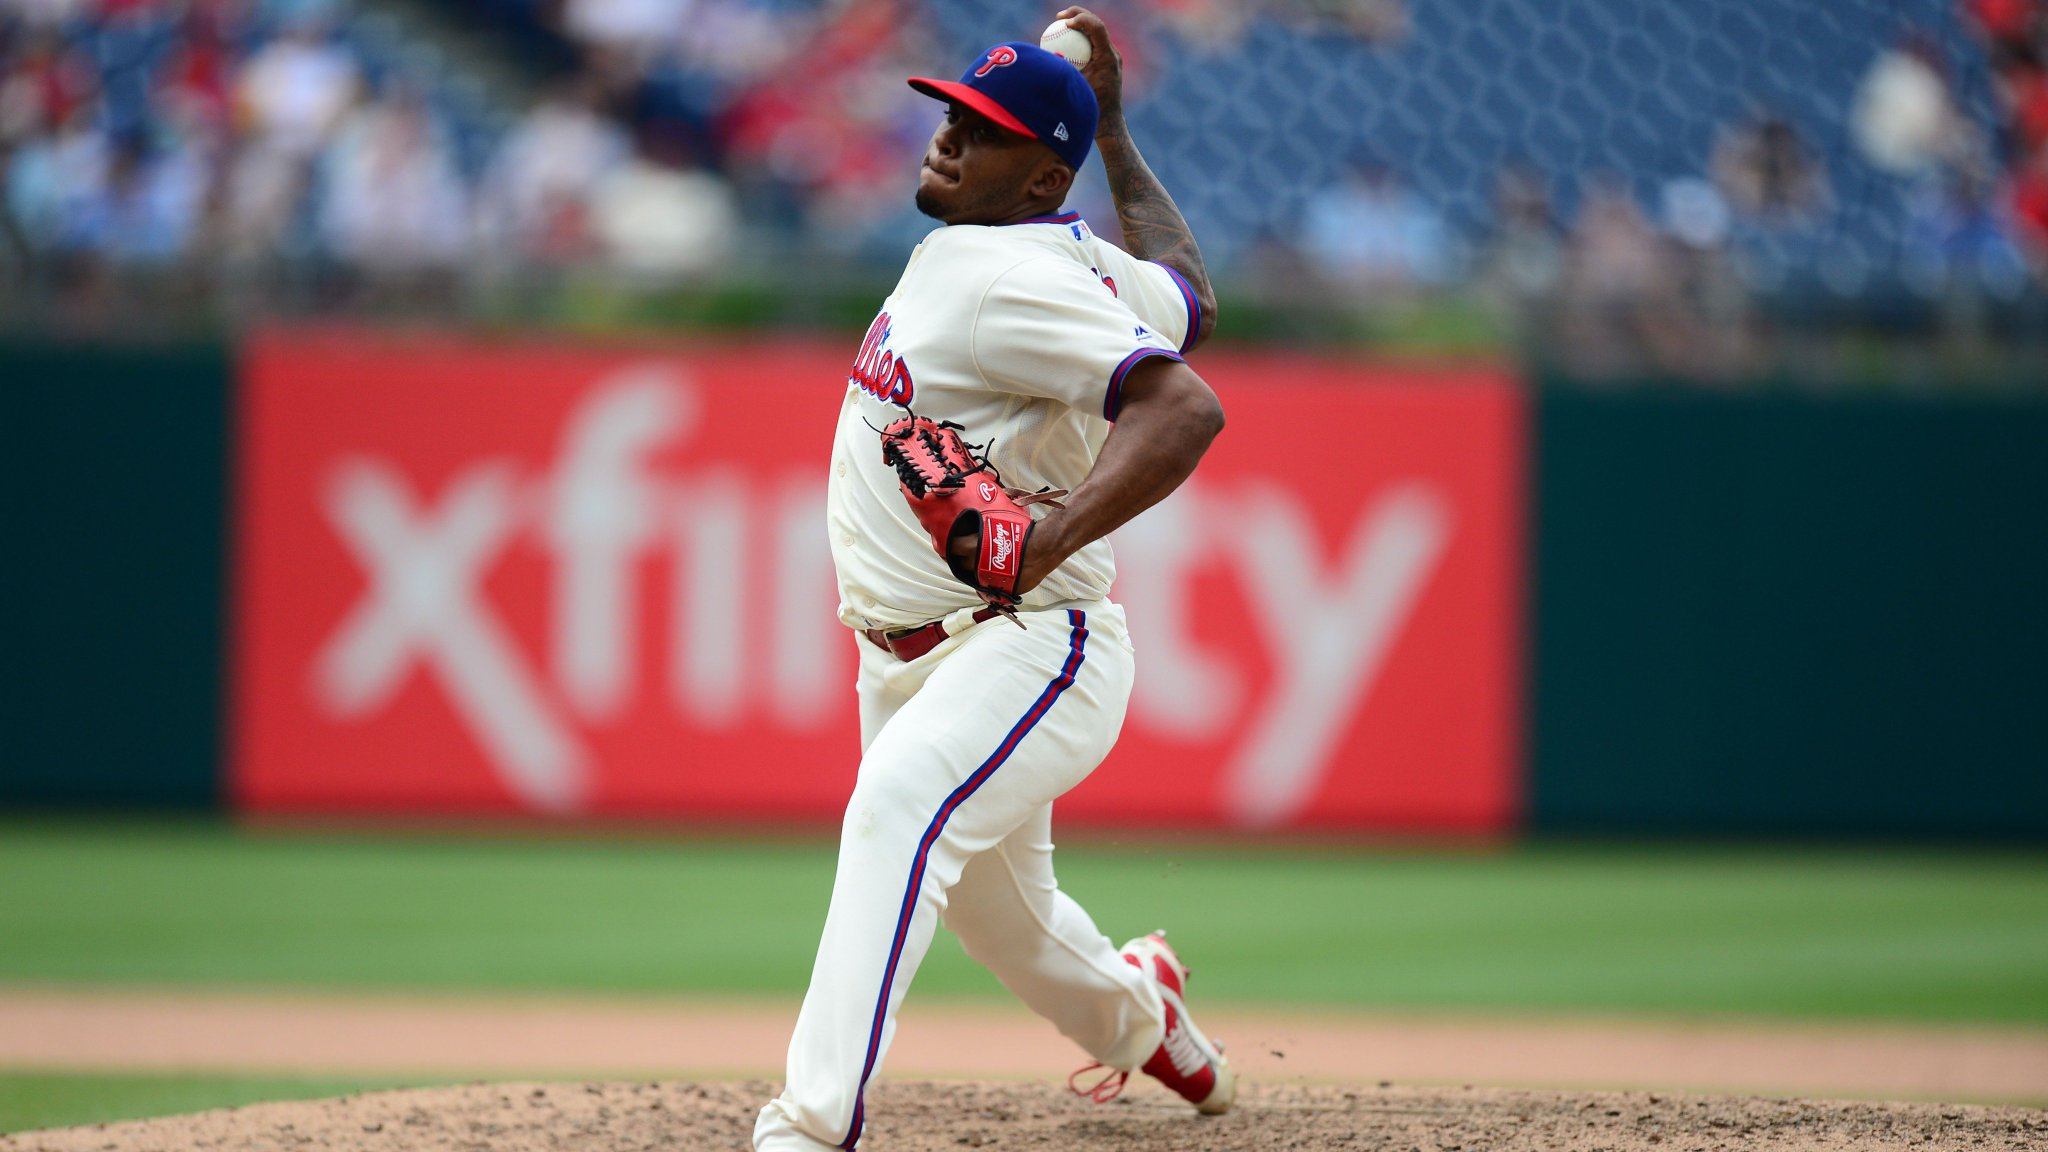 #Phillies have reinstated RHP Edubray Ramos from the 10-day disabled list. https://t.co/0qobF3asT3